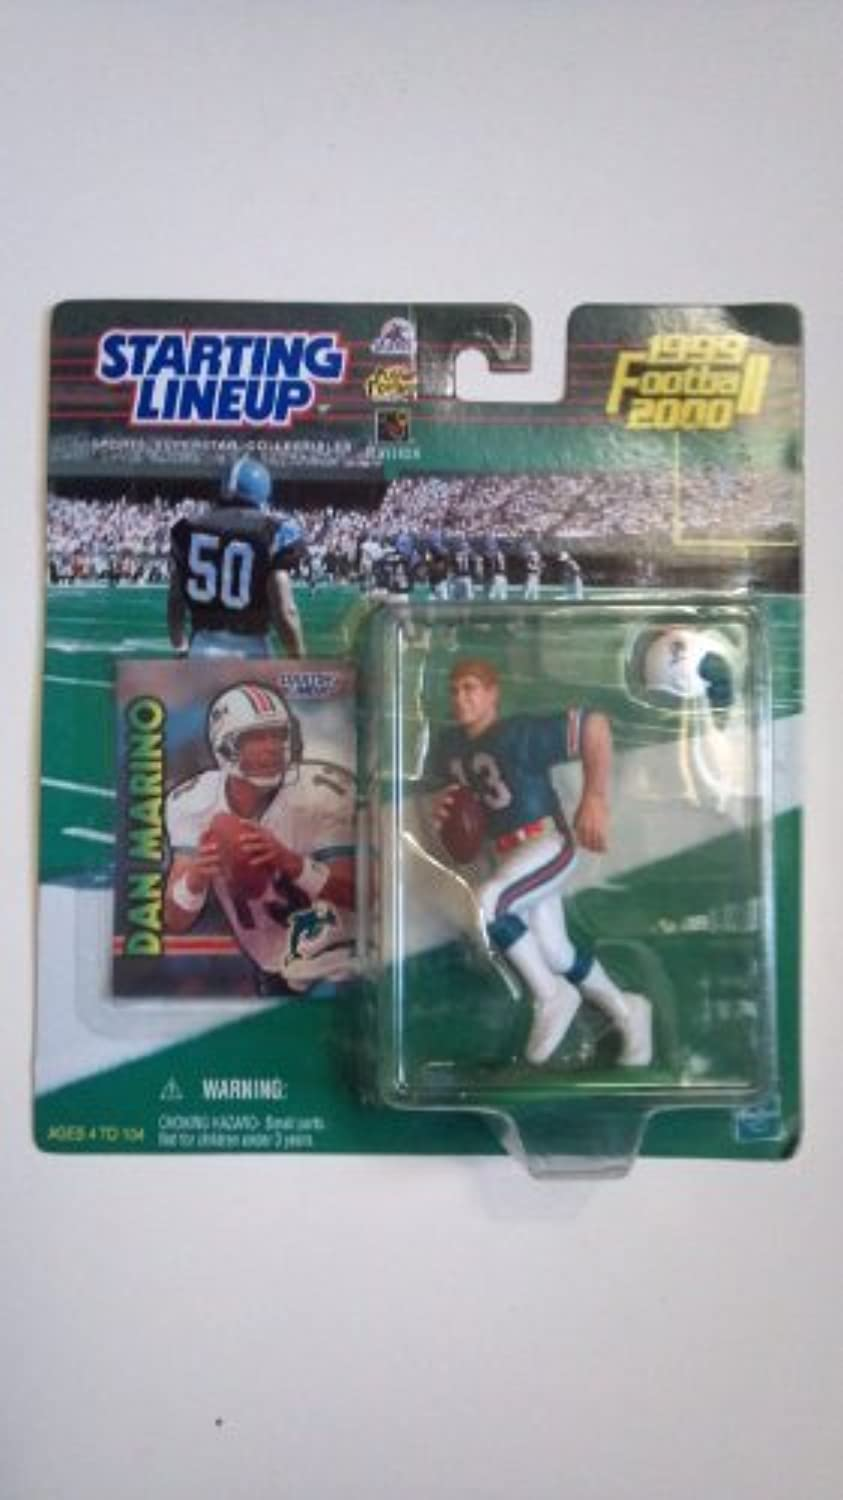 Dan Marino 19992000 Miami Dolphins  Starting Lineup Collectible Sport Action Figure by Starting Line Up